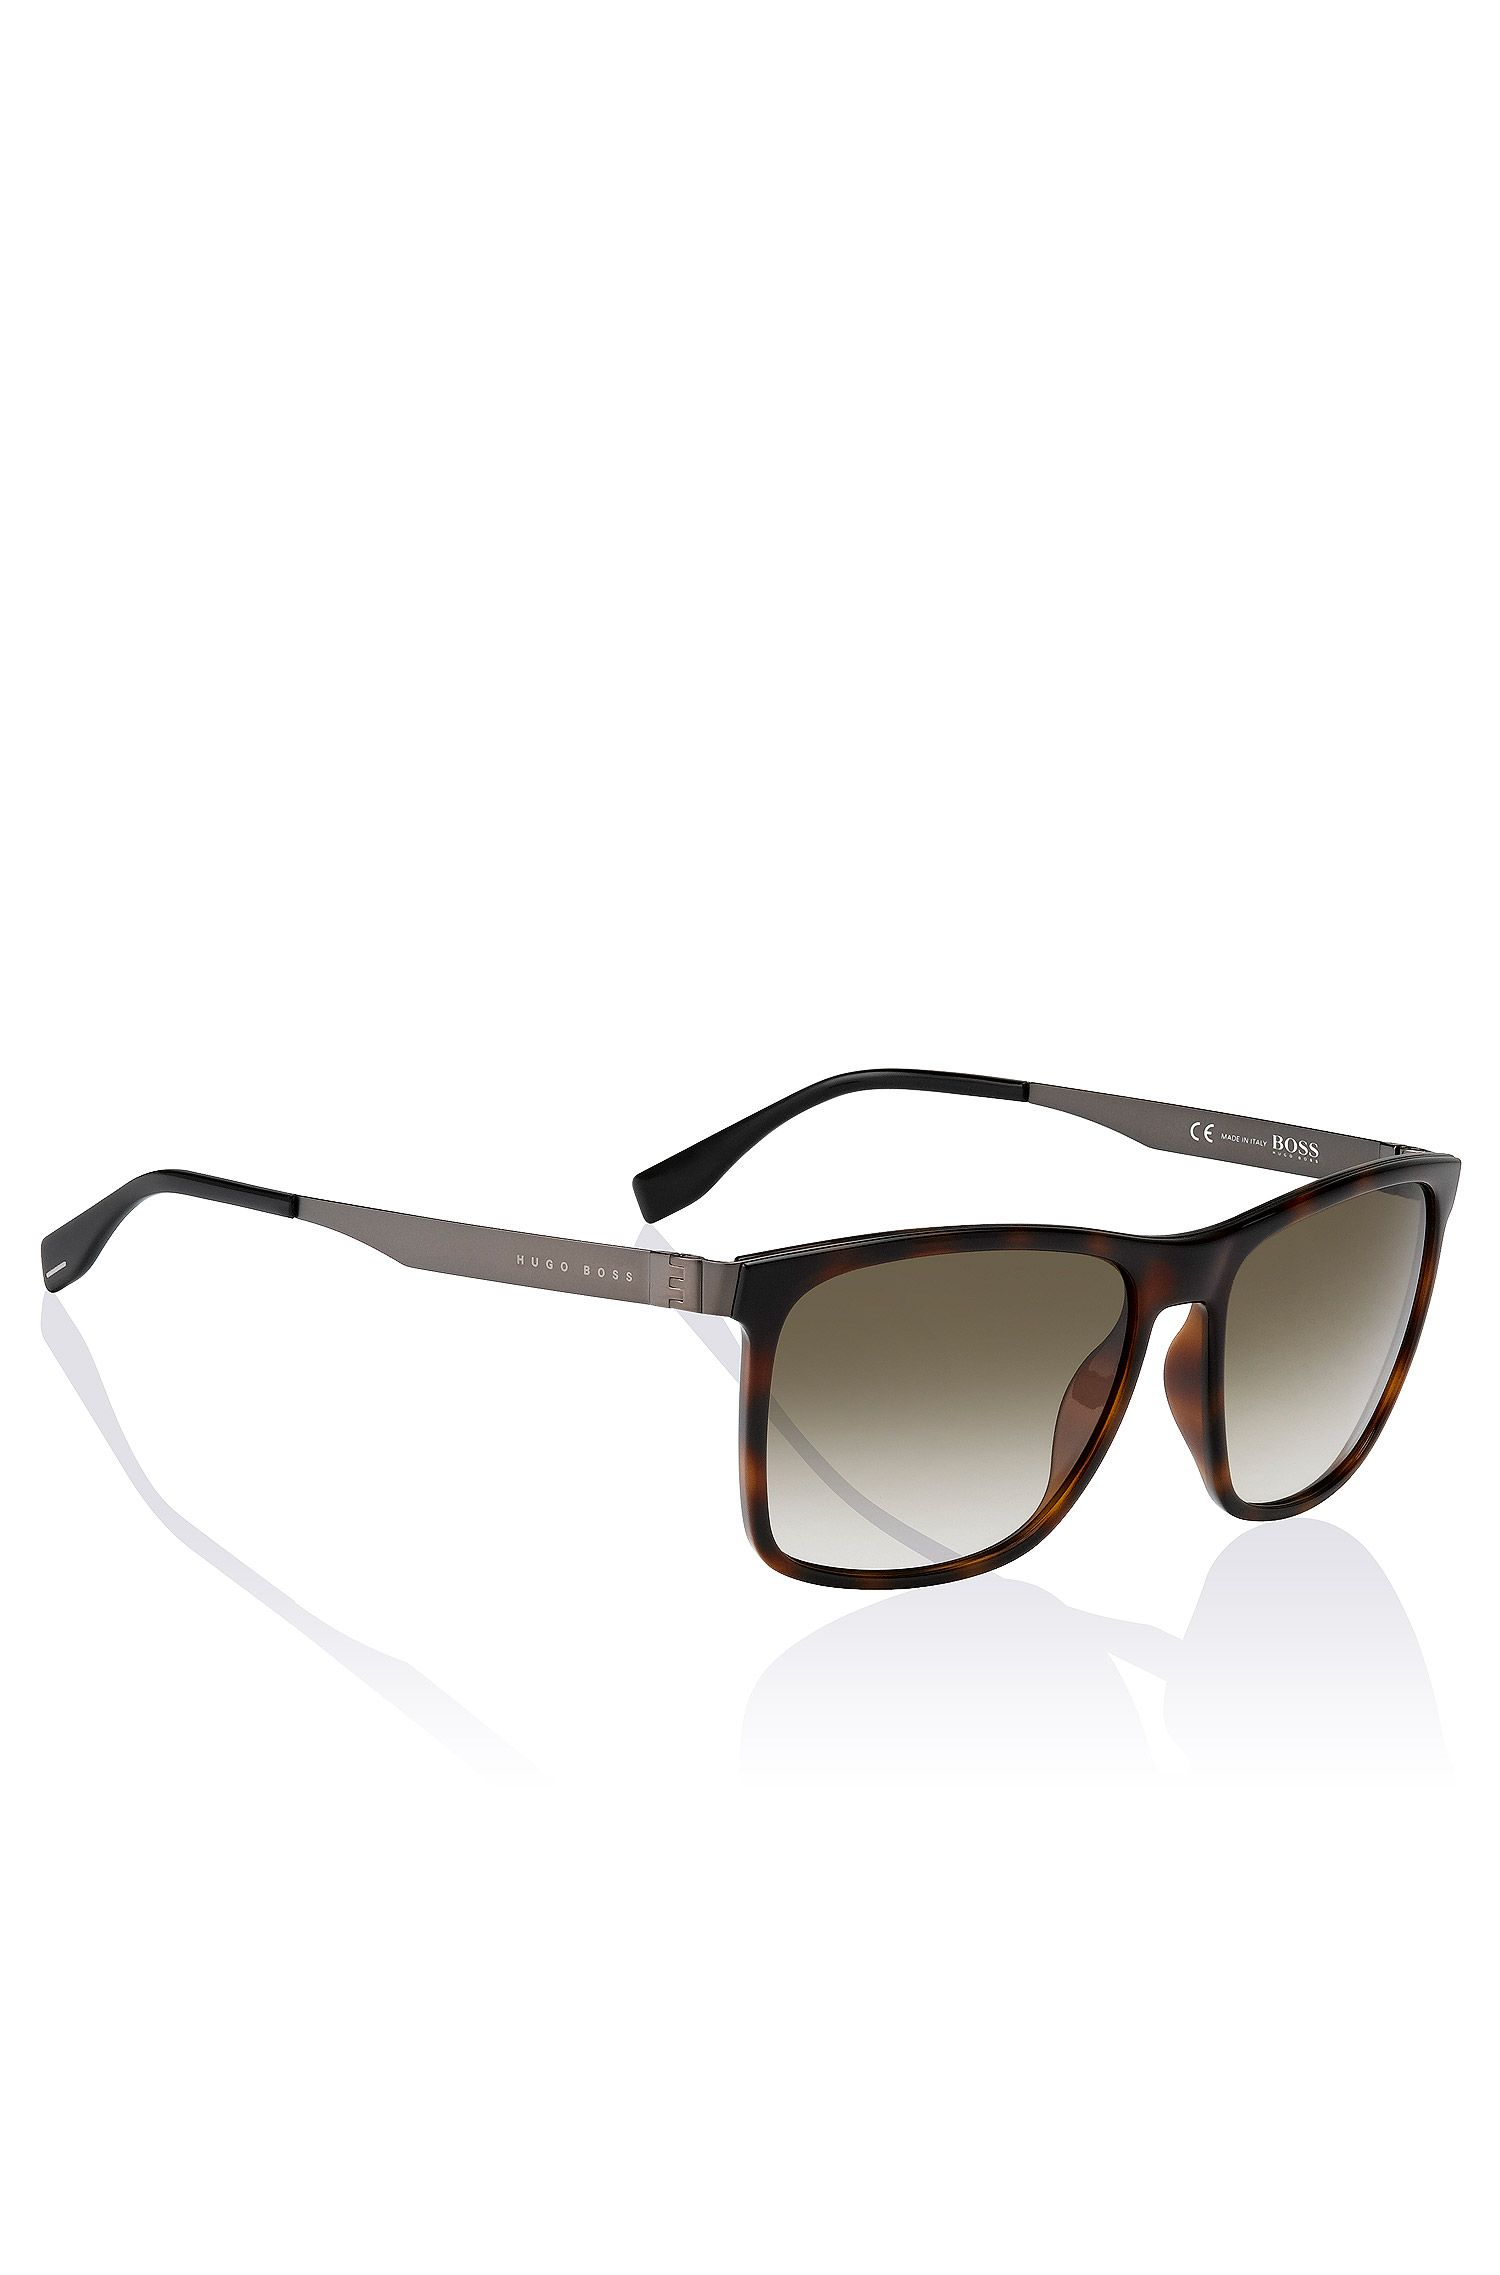 Sunglasses 'BOSS 0671/S' in acetate and stainless steel